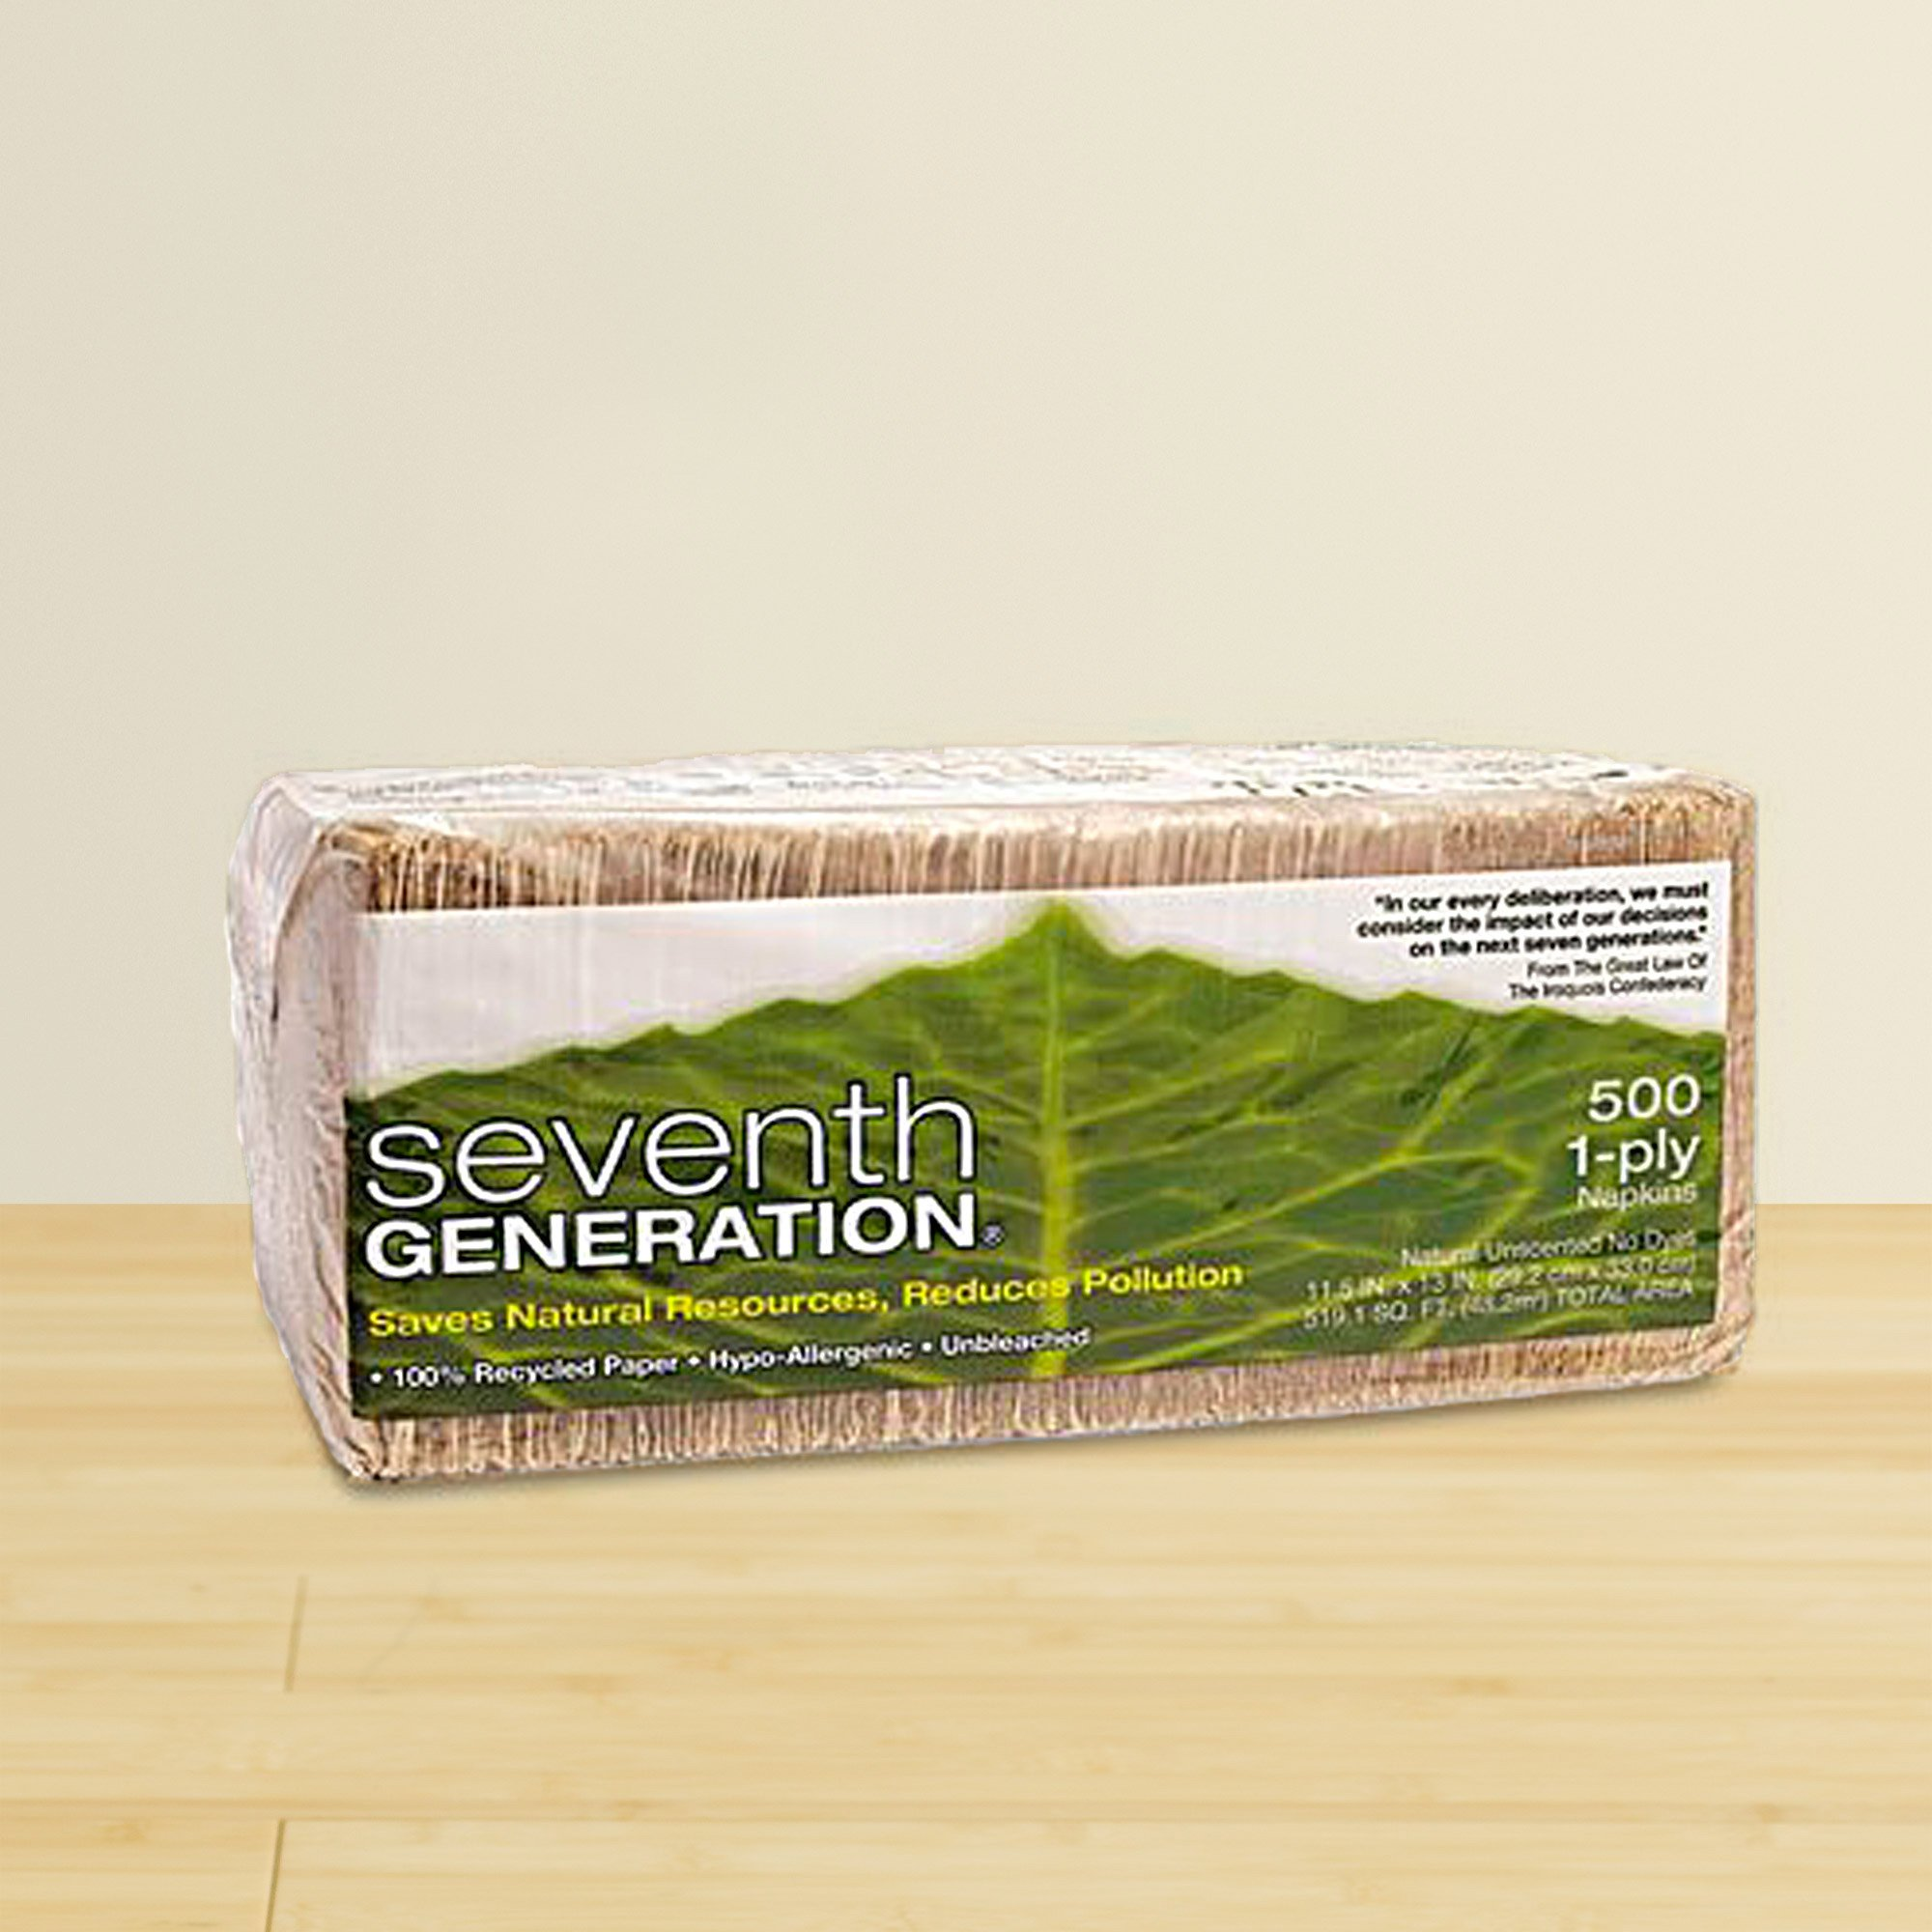 Seventh Generation Lunch Napkins, Natural, 1-Ply Sheets, 500-Count Packages (Pack of 12) by Seventh Generation (Image #1)